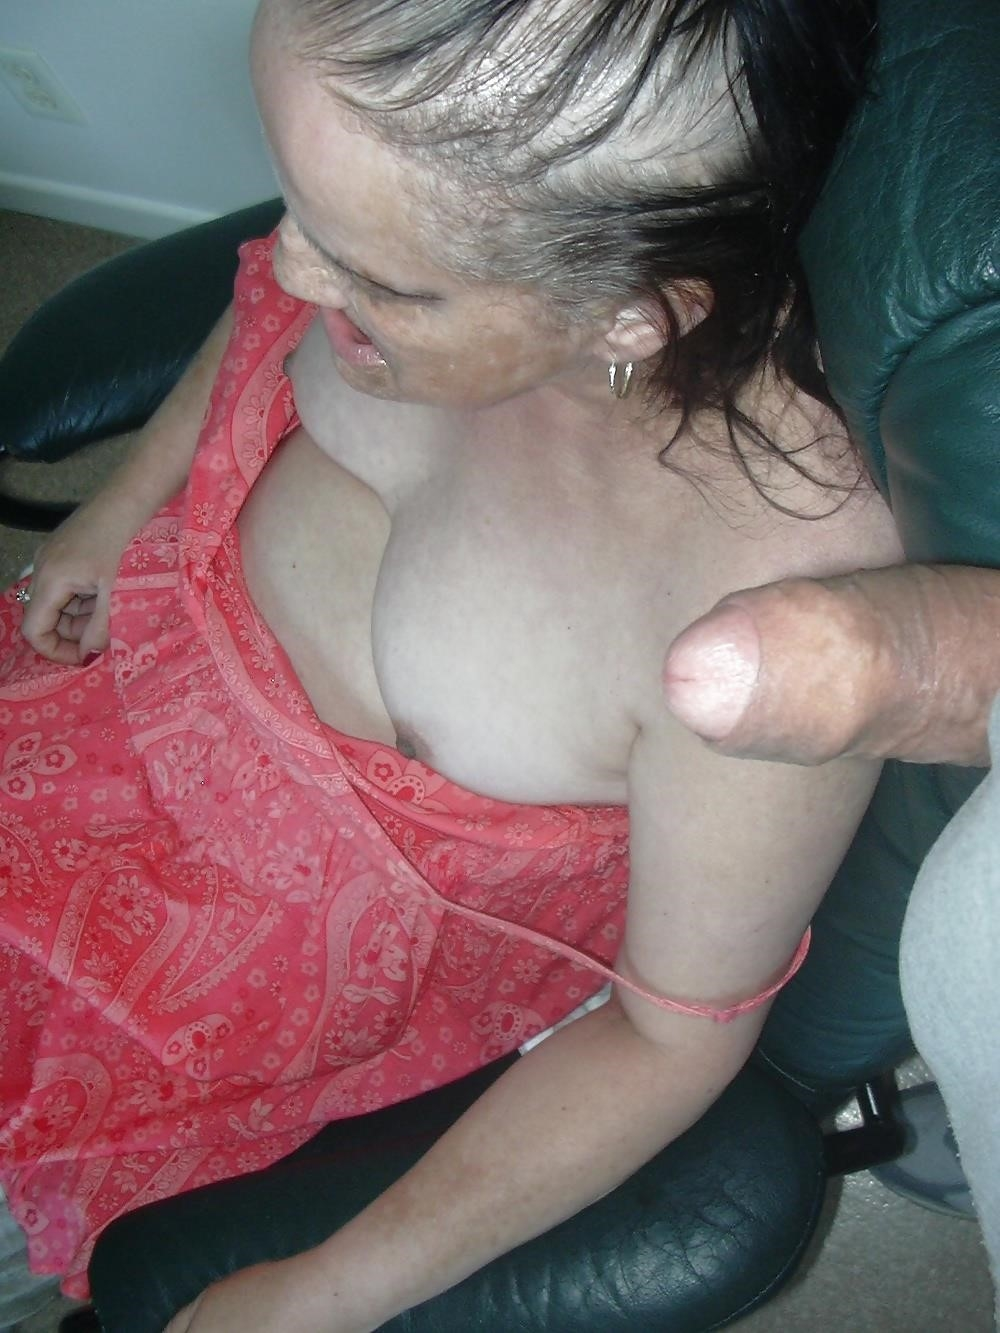 Naked pictures of ugly women-2628